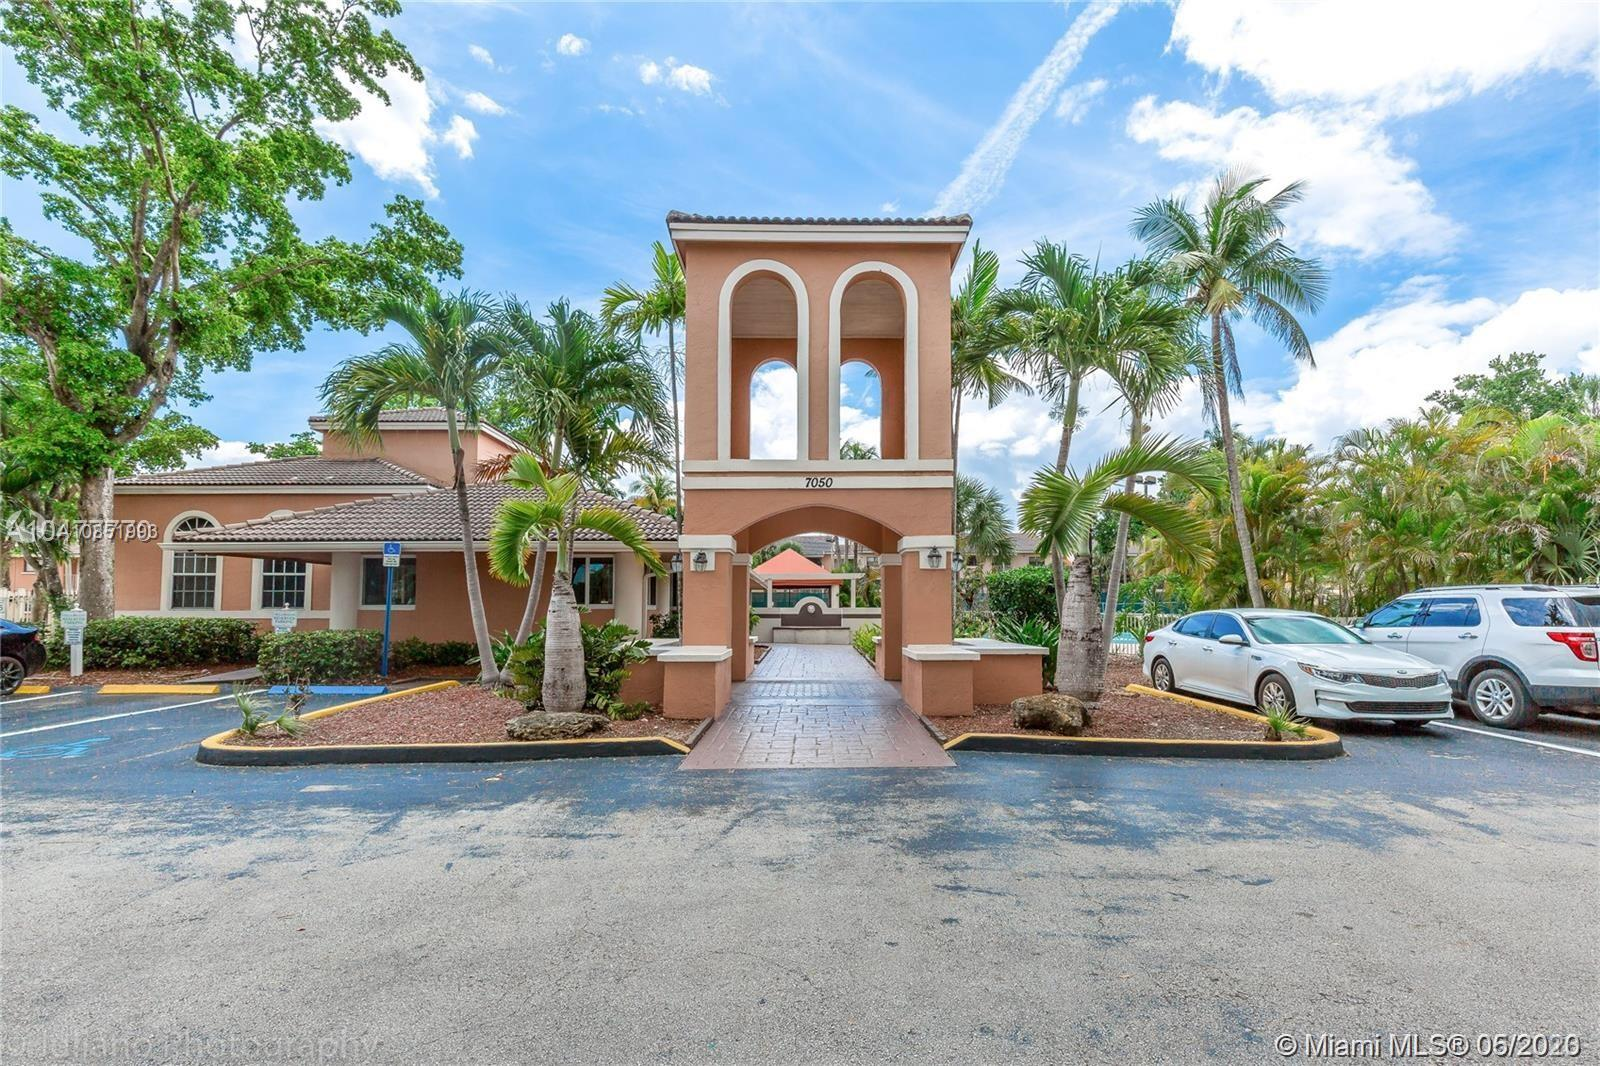 7090 NW 179th St #209 For Sale A10851993, FL